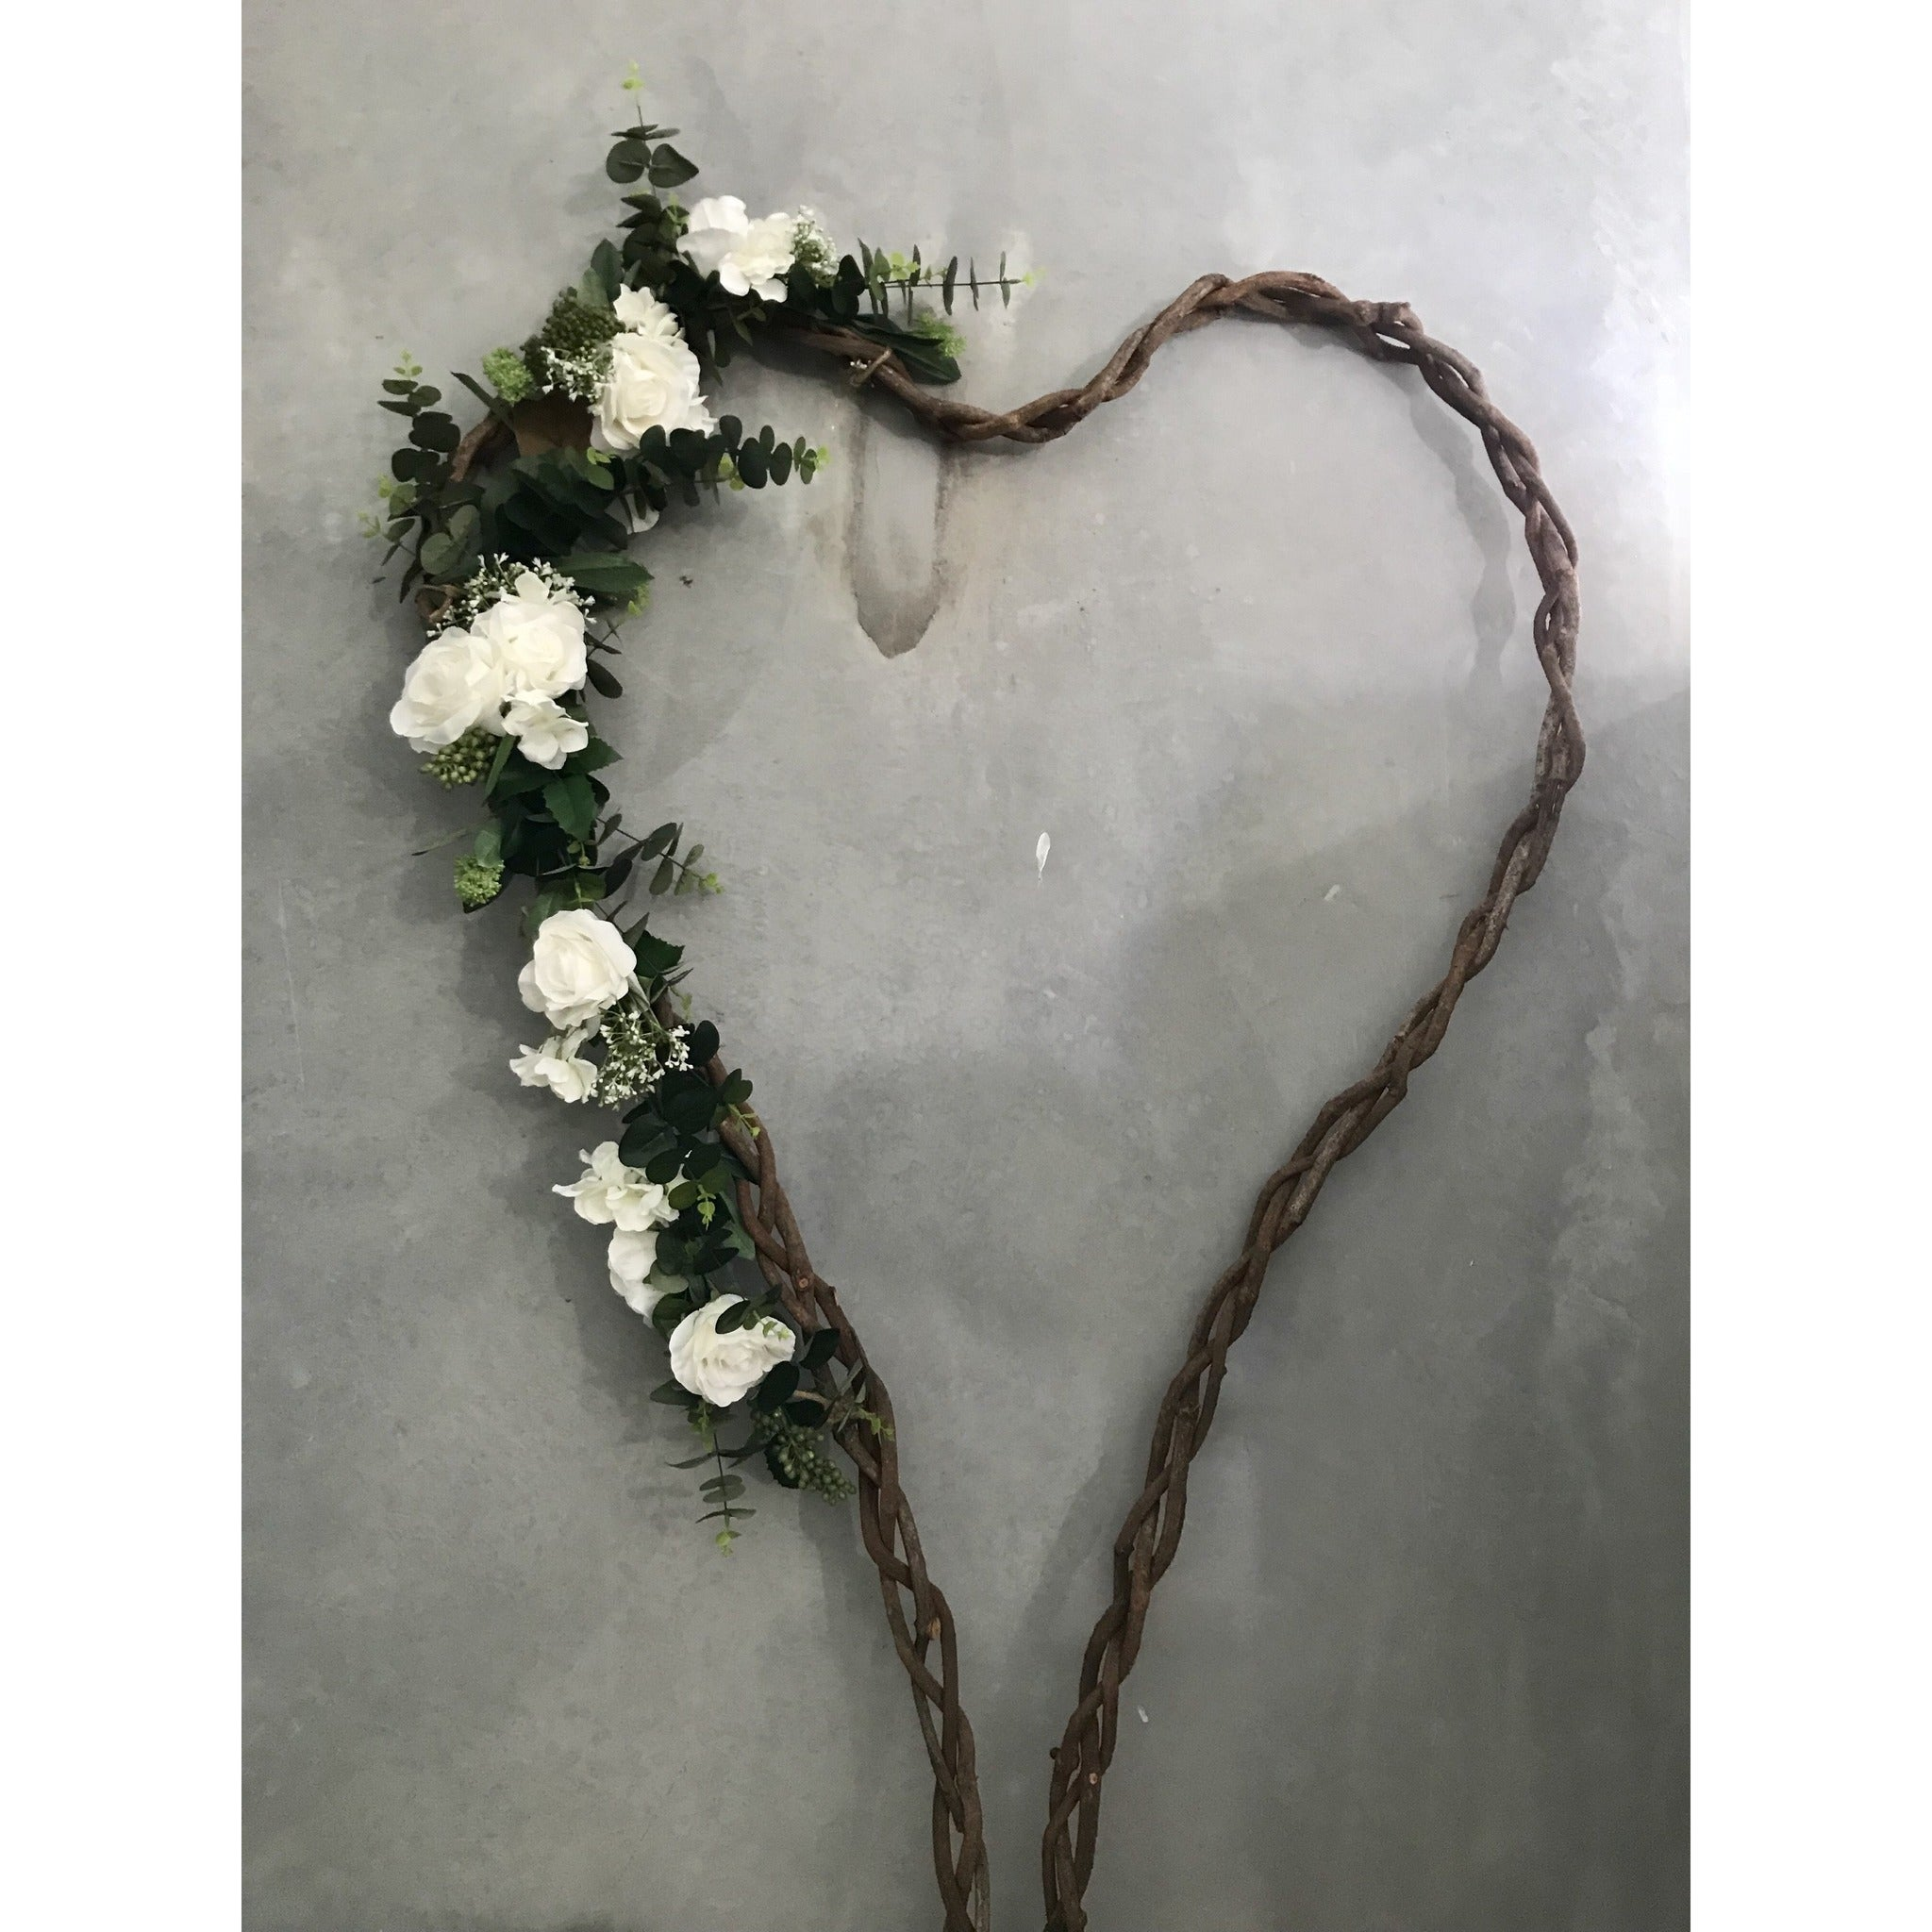 Hire of LARGE - Natural Vine Heart- white + greenery.